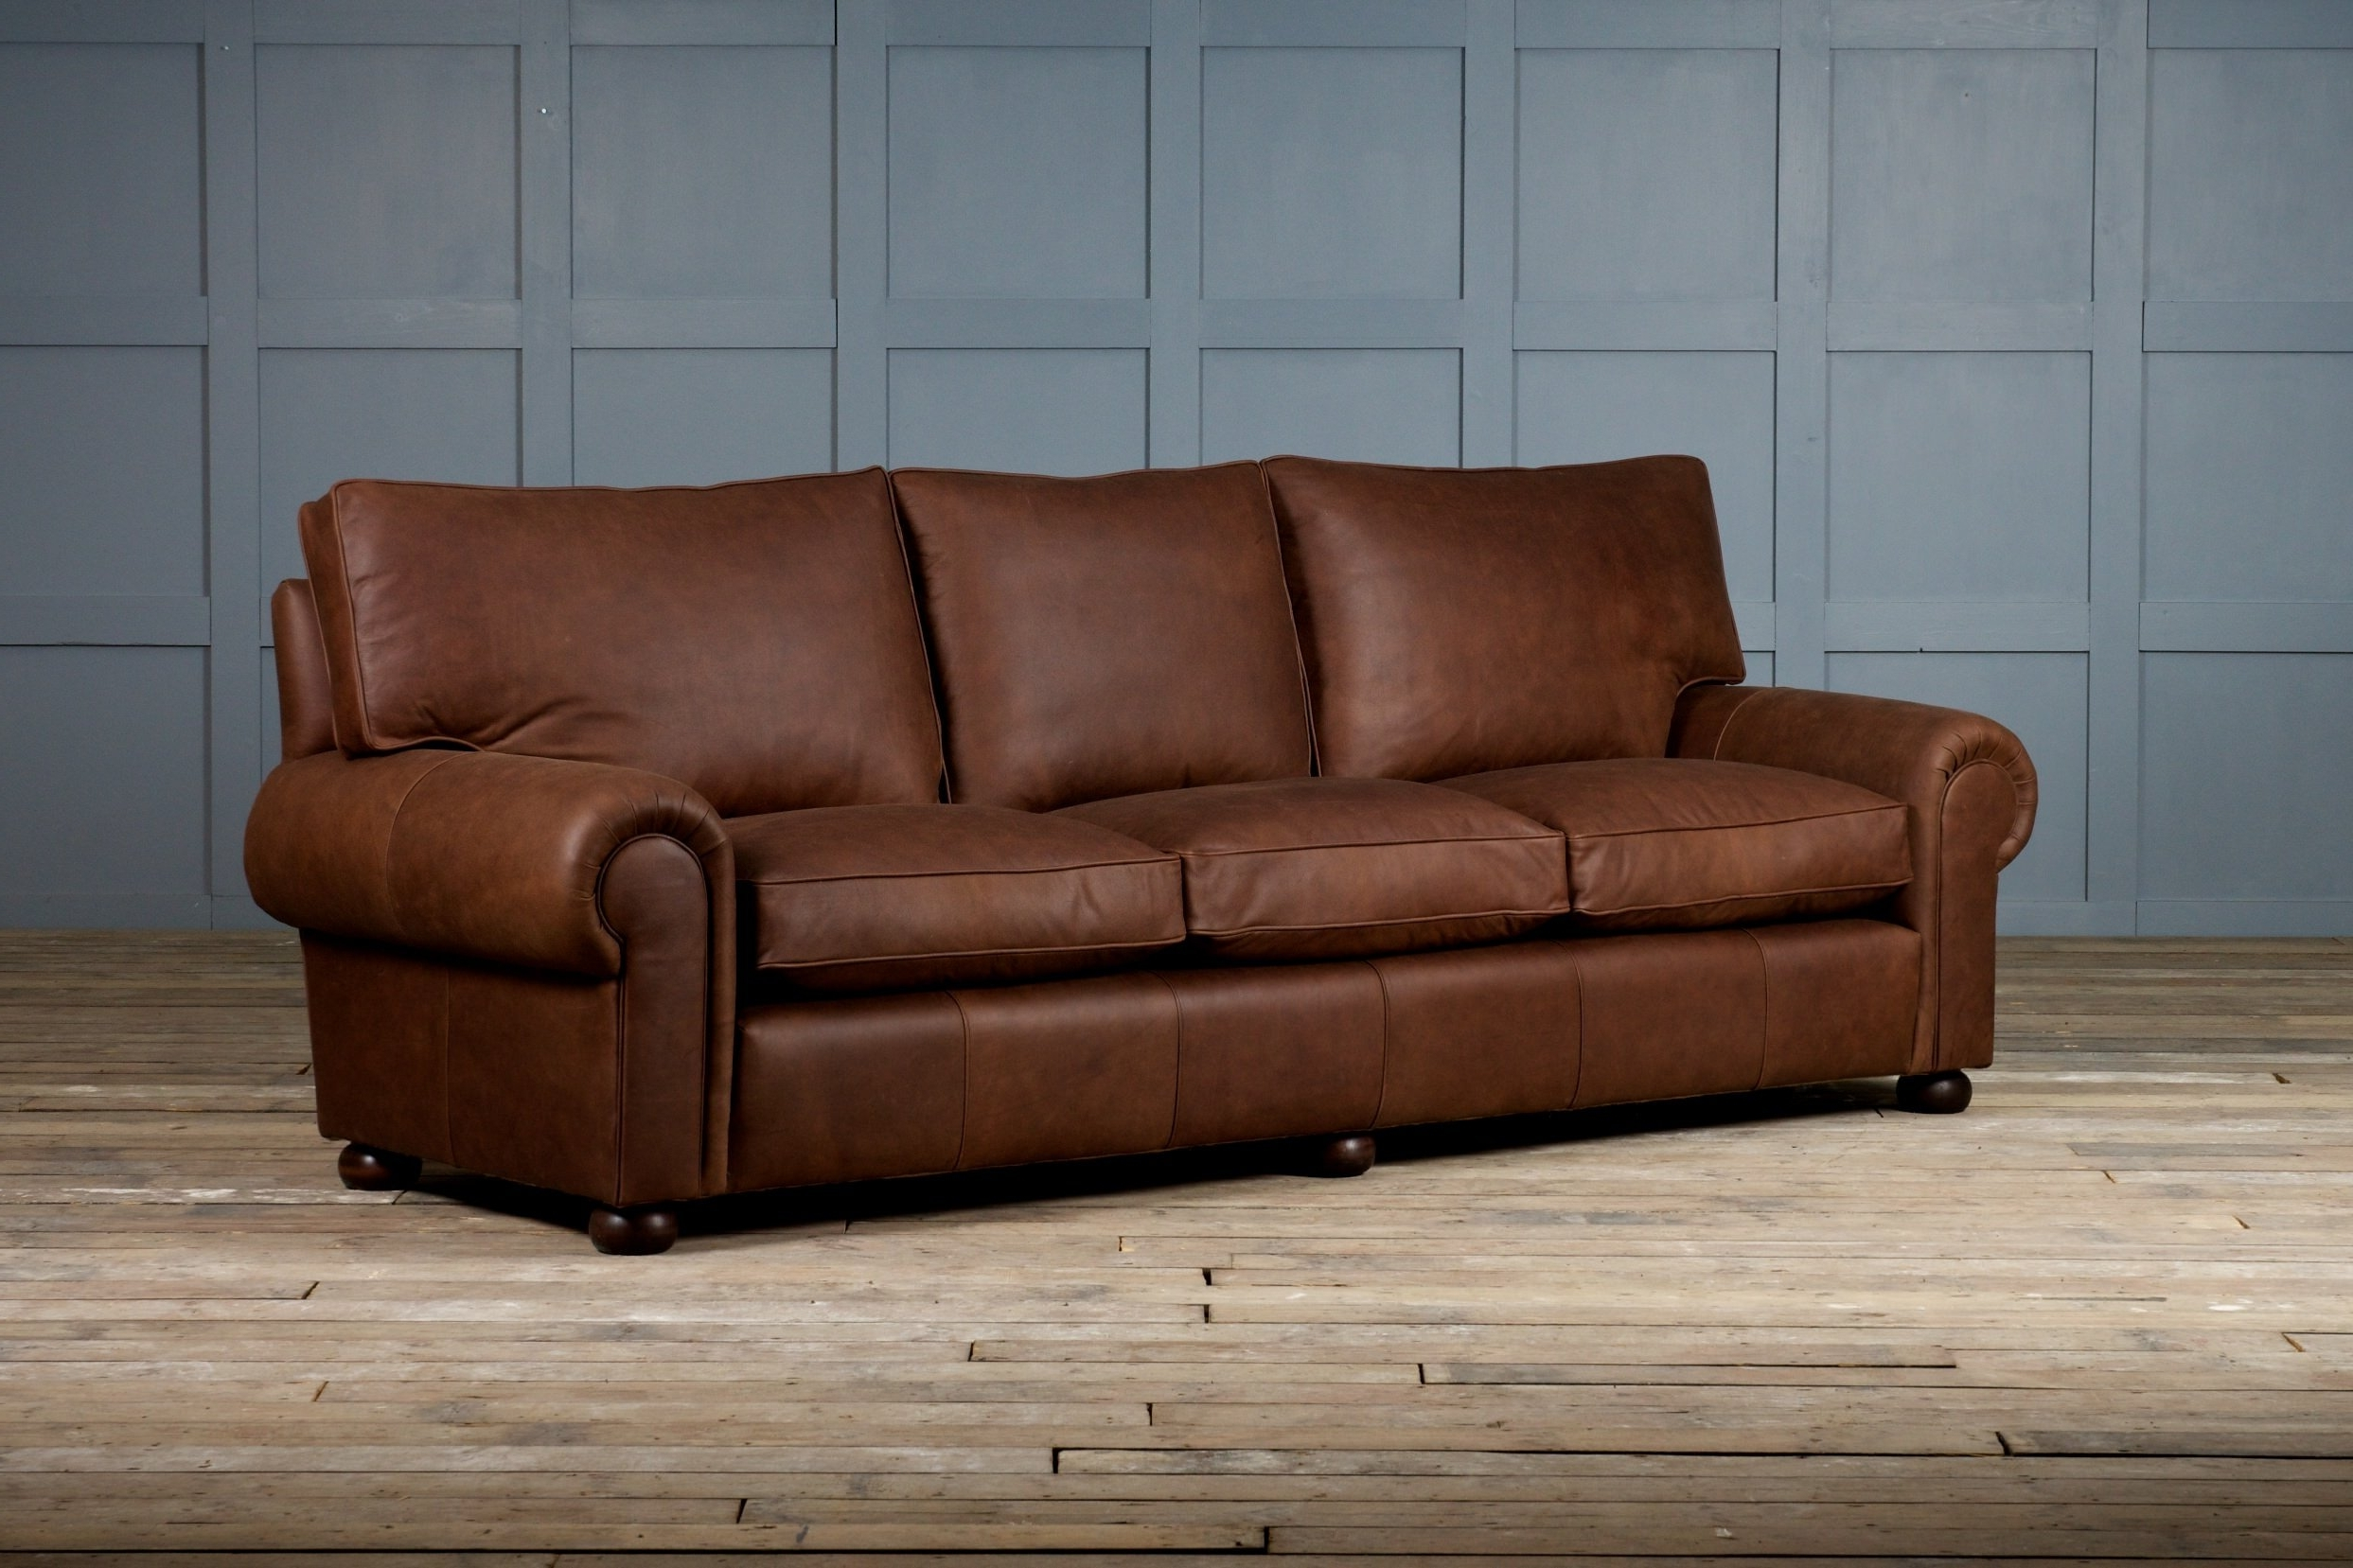 Most Recent Full Grain Leather Sofas With Regard To Light Brown Full Grain Leather Corner Sofa Decor With Cushions As (View 19 of 20)